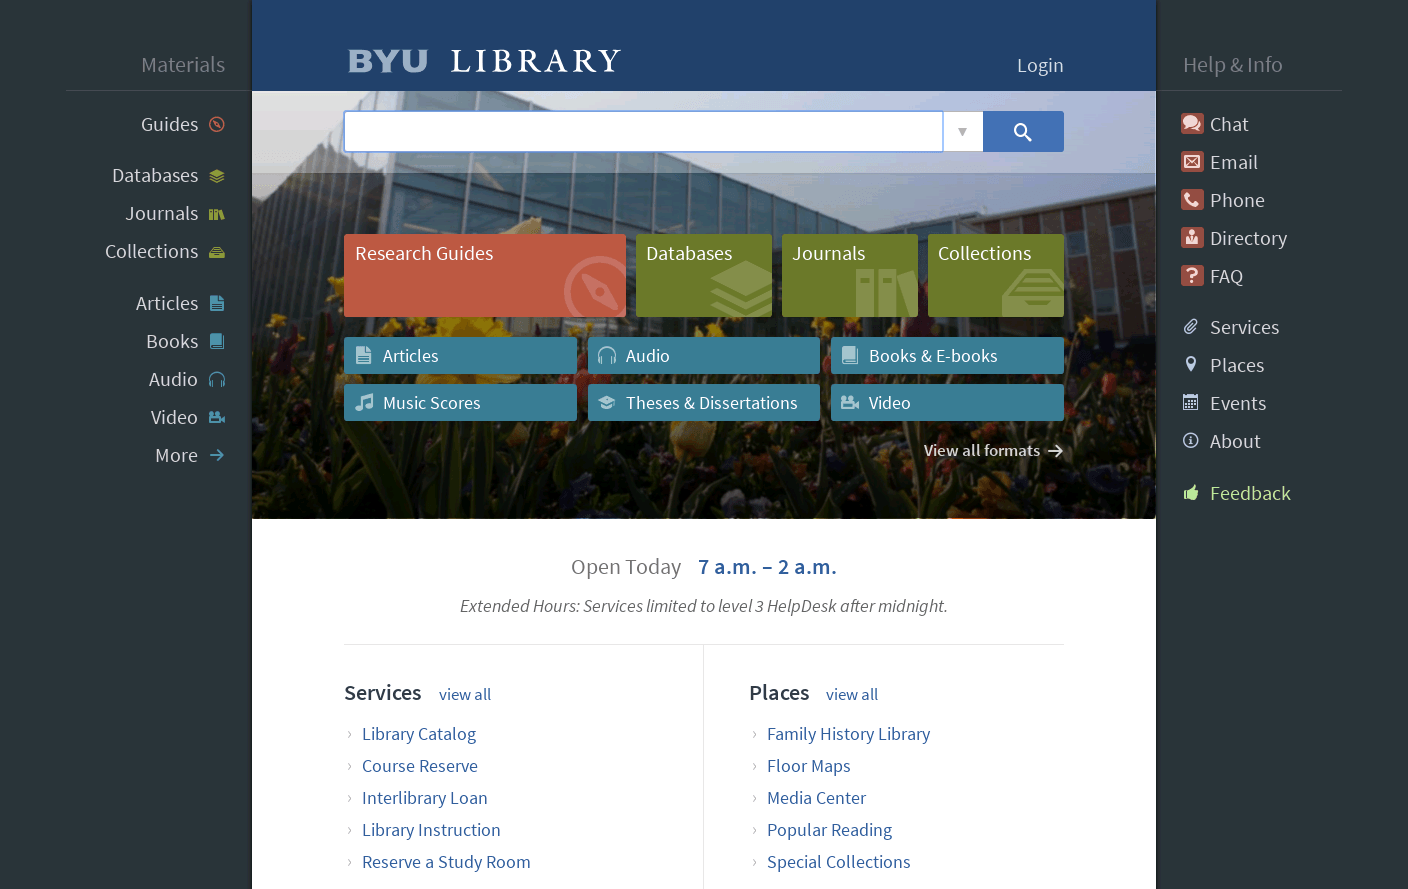 BYU Library